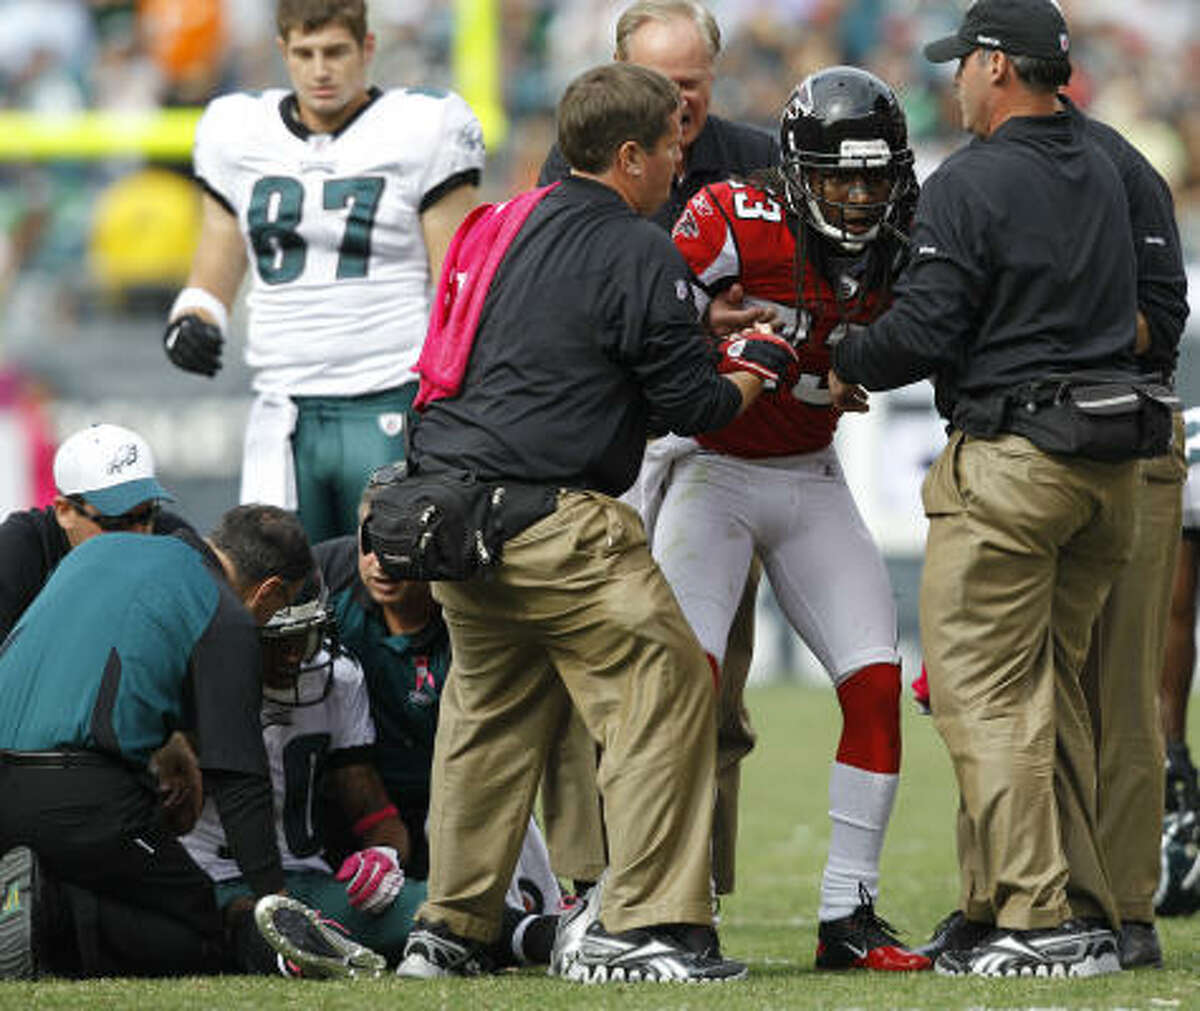 Atlanta's Dunta Robinson, right, and Philadelphia's DeSean Jackson both had to be helped up after Robinson's big hit on Sunday.